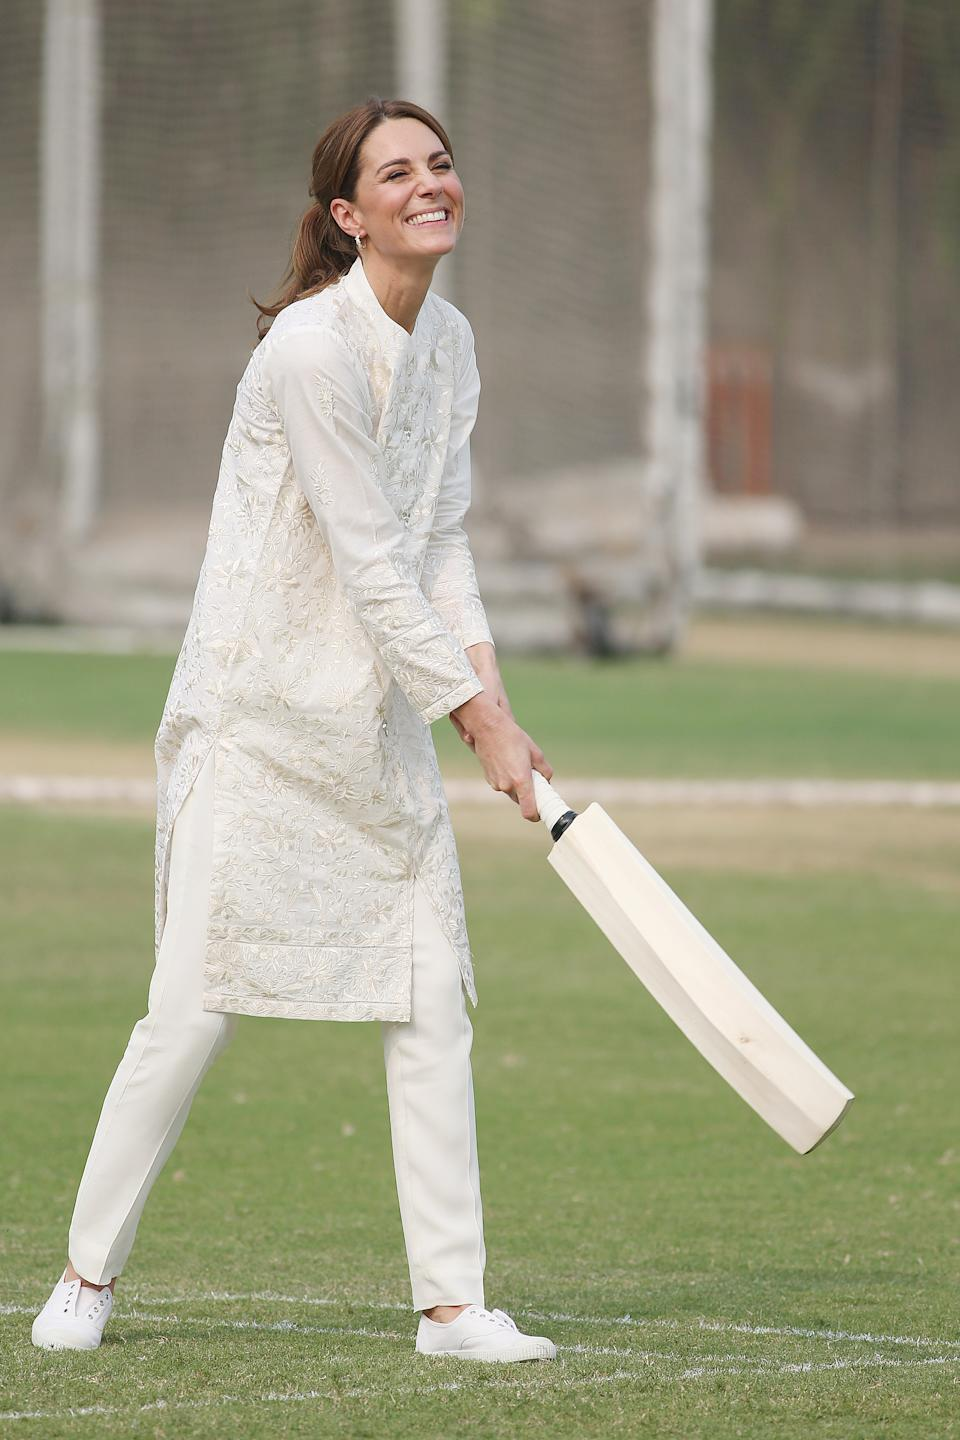 """Kate wore a chic all-white outfit on day four, which was made up of a traditional embroidered shalwar kameez, which had been custom made by Pakistani brand, Gul Ahmed. The 37-year-old finished off the look with<a href=""""https://fave.co/2Jd7cXd"""" rel=""""nofollow noopener"""" target=""""_blank"""" data-ylk=""""slk:affordable £28 trainers"""" class=""""link rapid-noclick-resp""""> <strong>affordable £28 trainers</strong></a> by British brand, Hampton Canvas. [<em>Photo: Getty]</em>"""